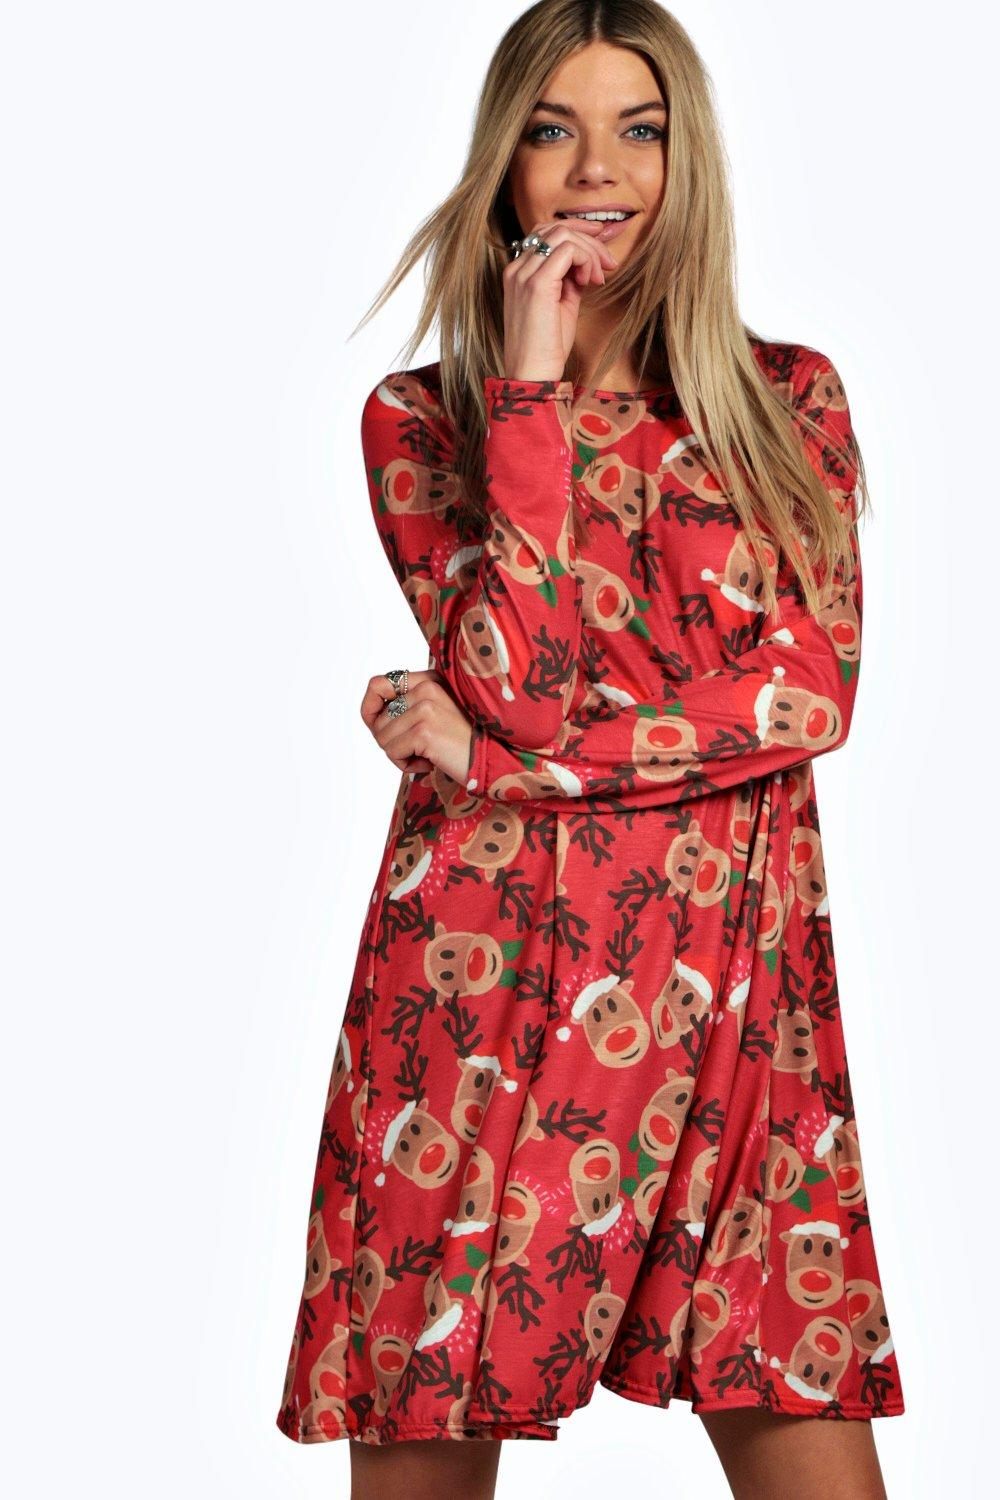 Alexis reindeer printed swing christmas dress at boohoo com